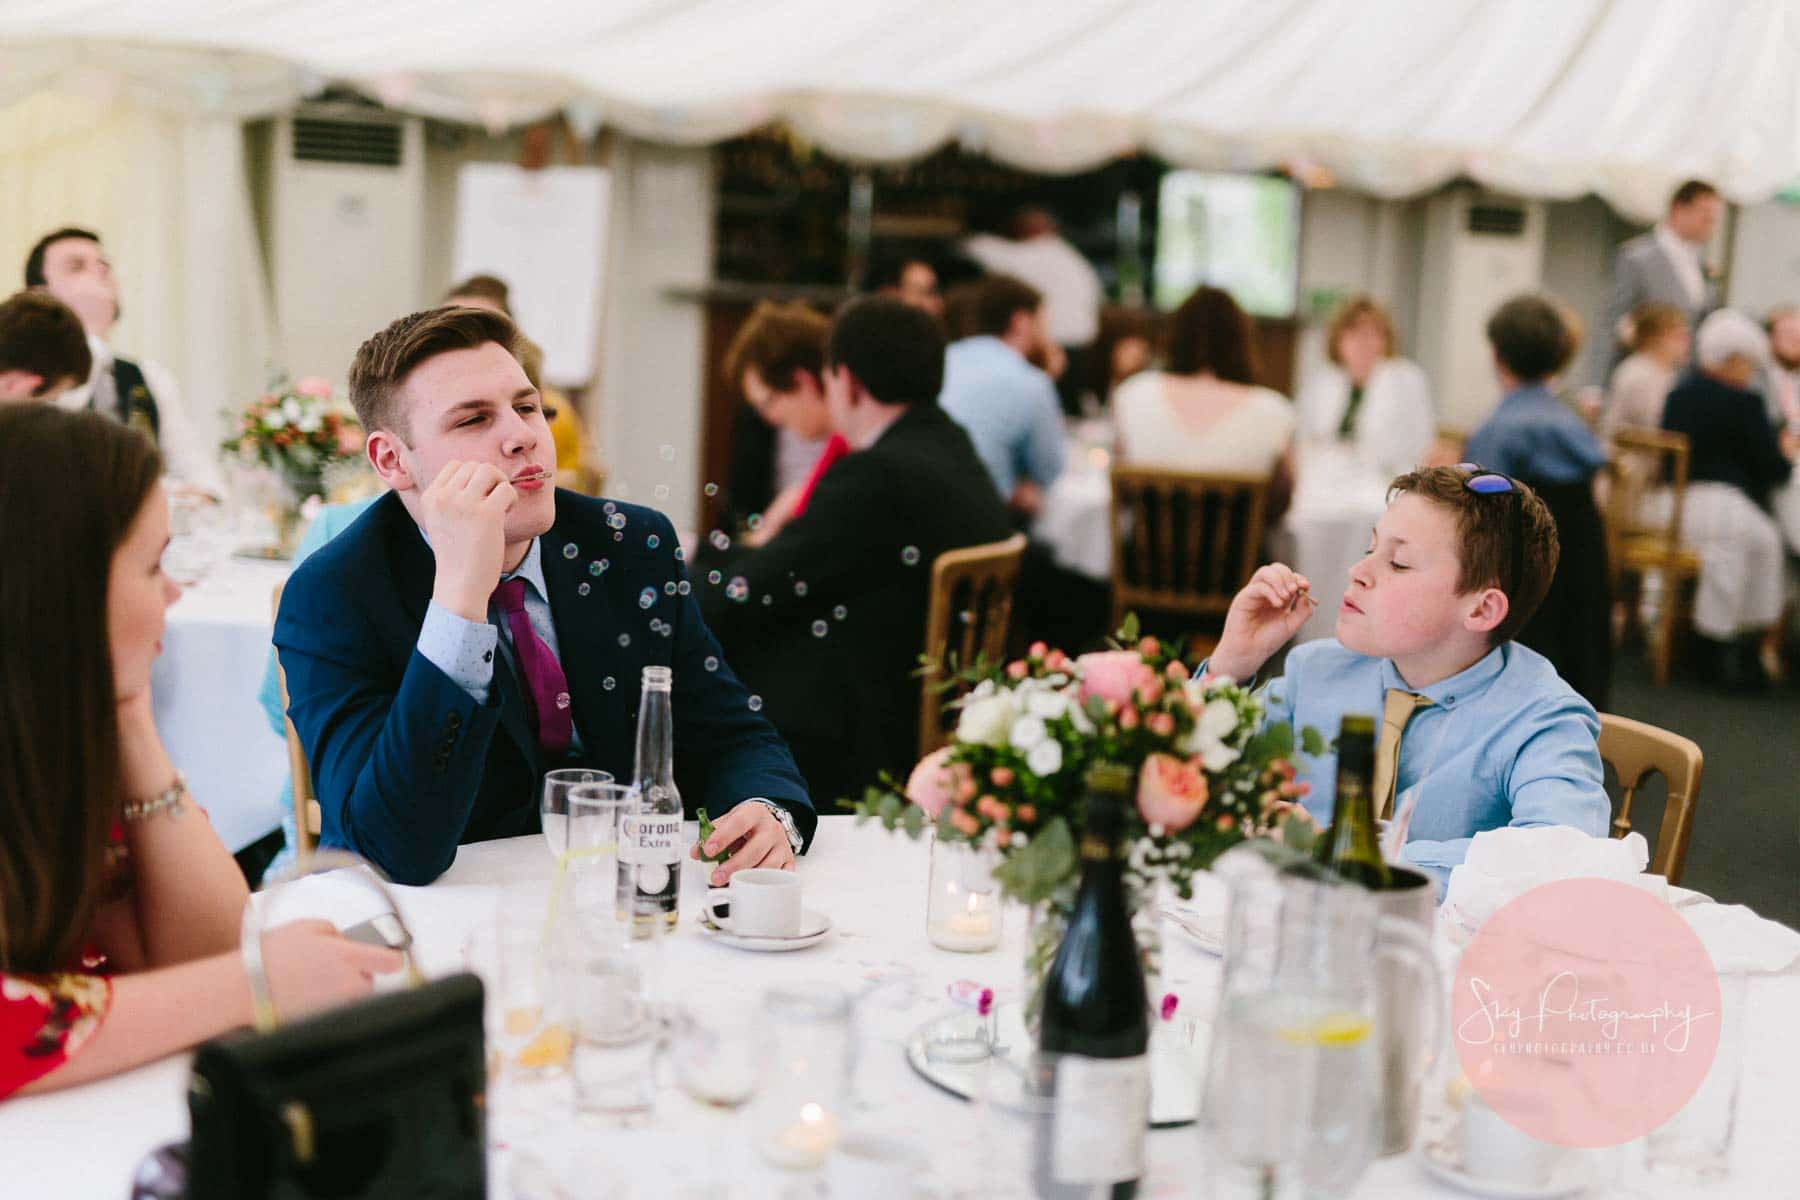 Guest blowing bubbles at wedding reception